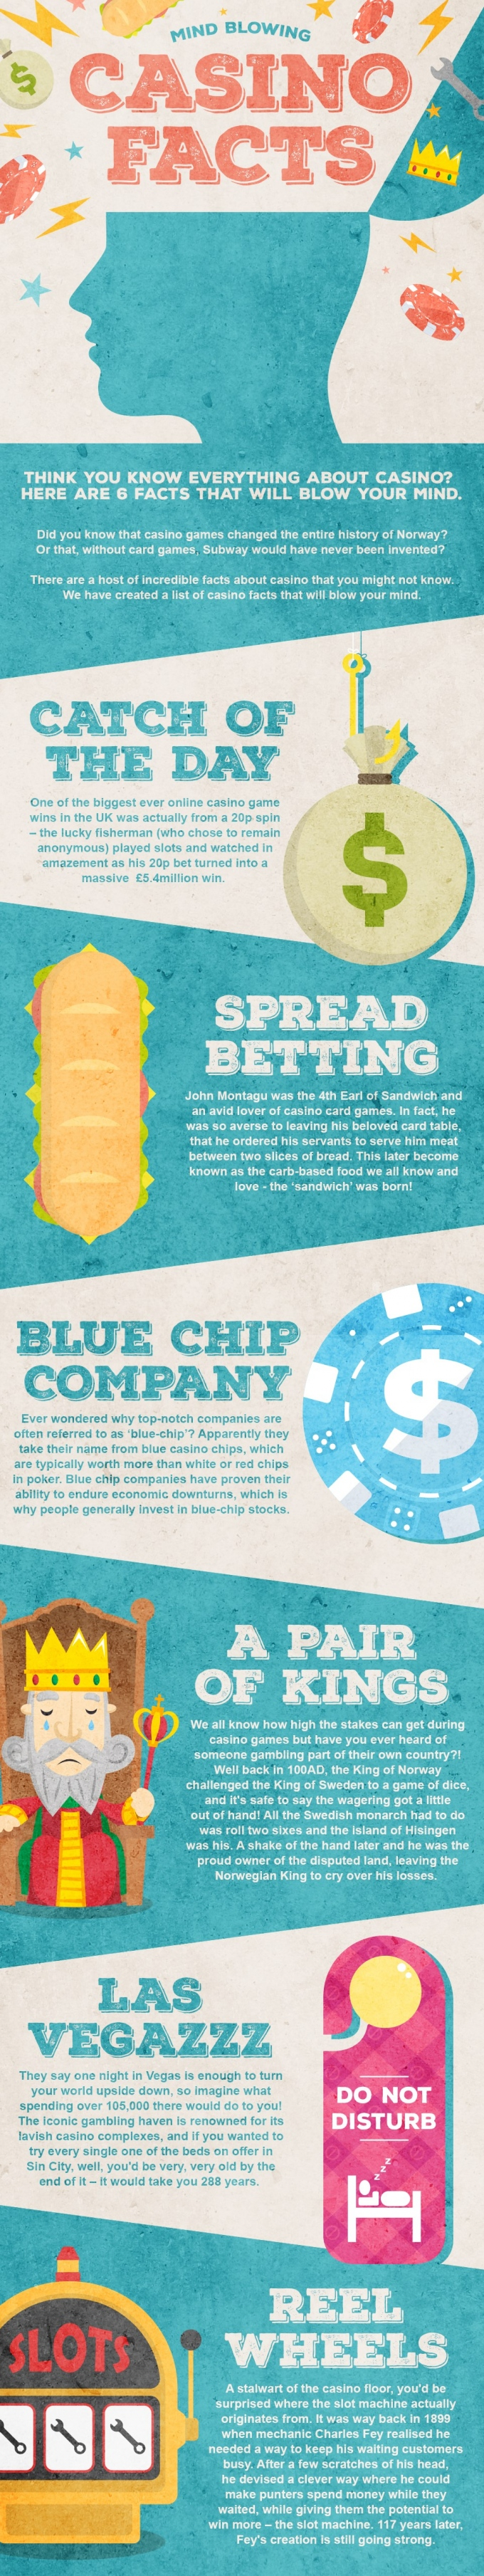 Awesome casino facts